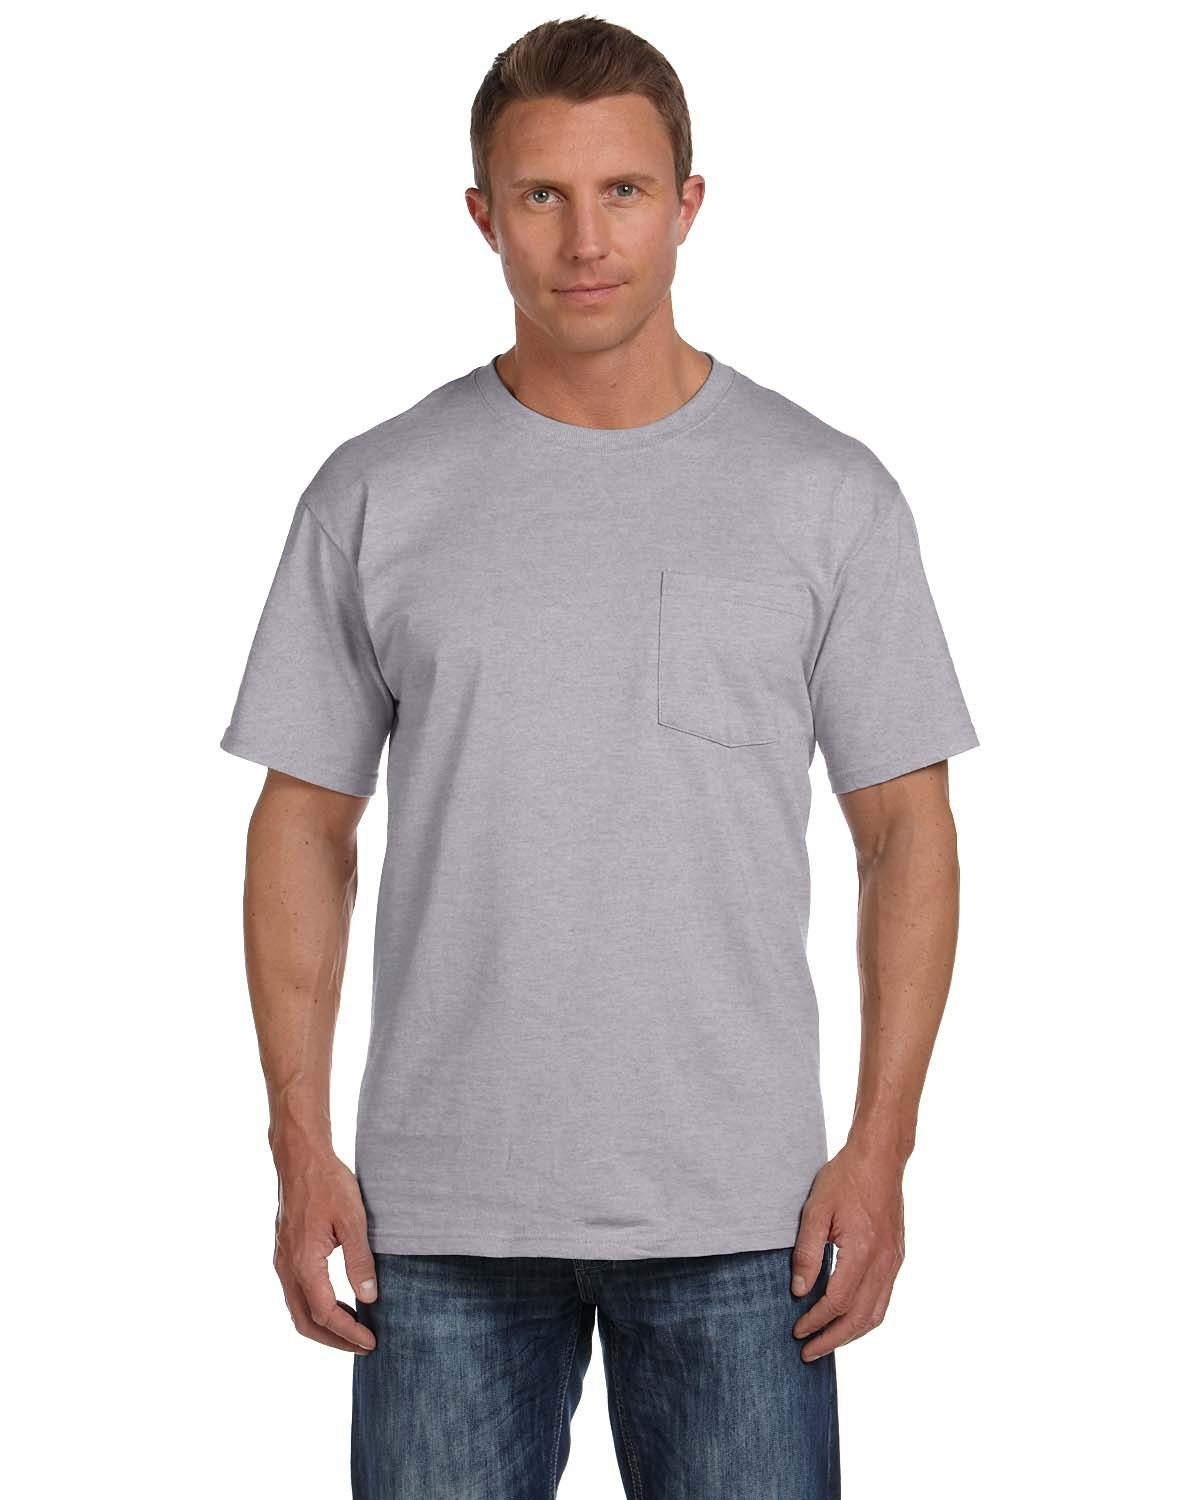 Fruit of the Loom Adult HD Cotton™ Pocket T-Shirt ATHLETIC HEATHER